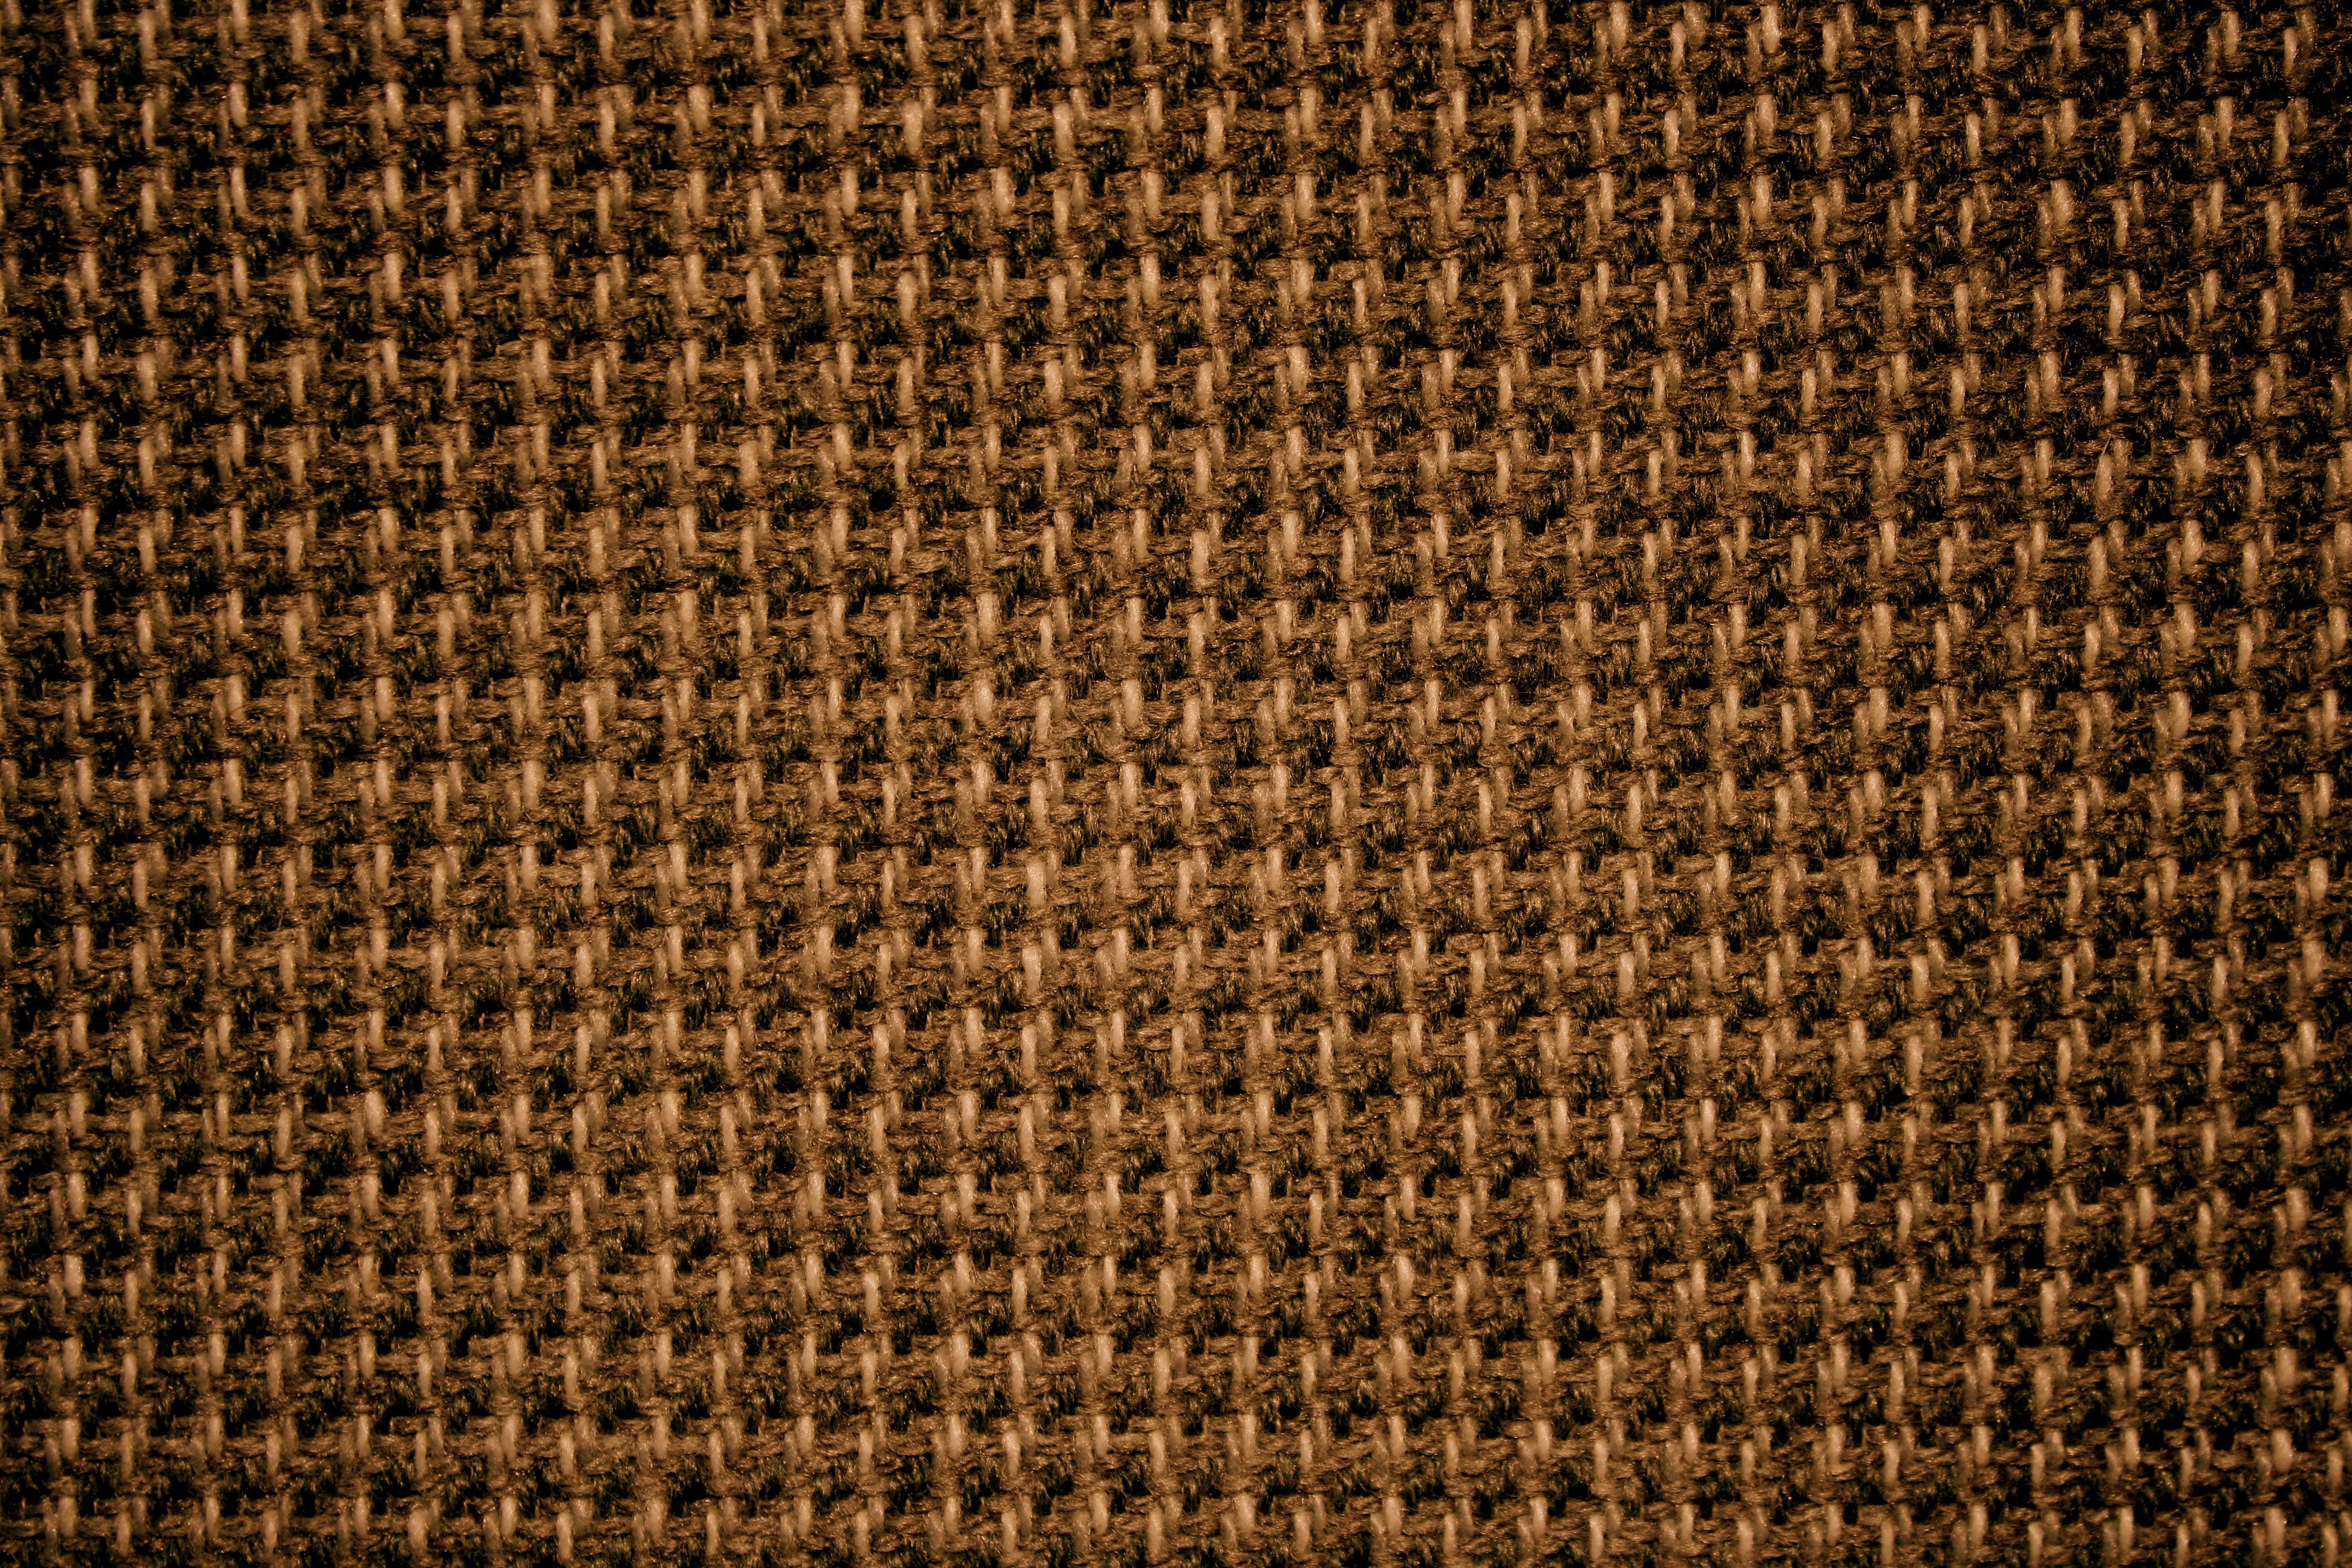 Chocolate Brown Upholstery Fabric Texture Photos Public